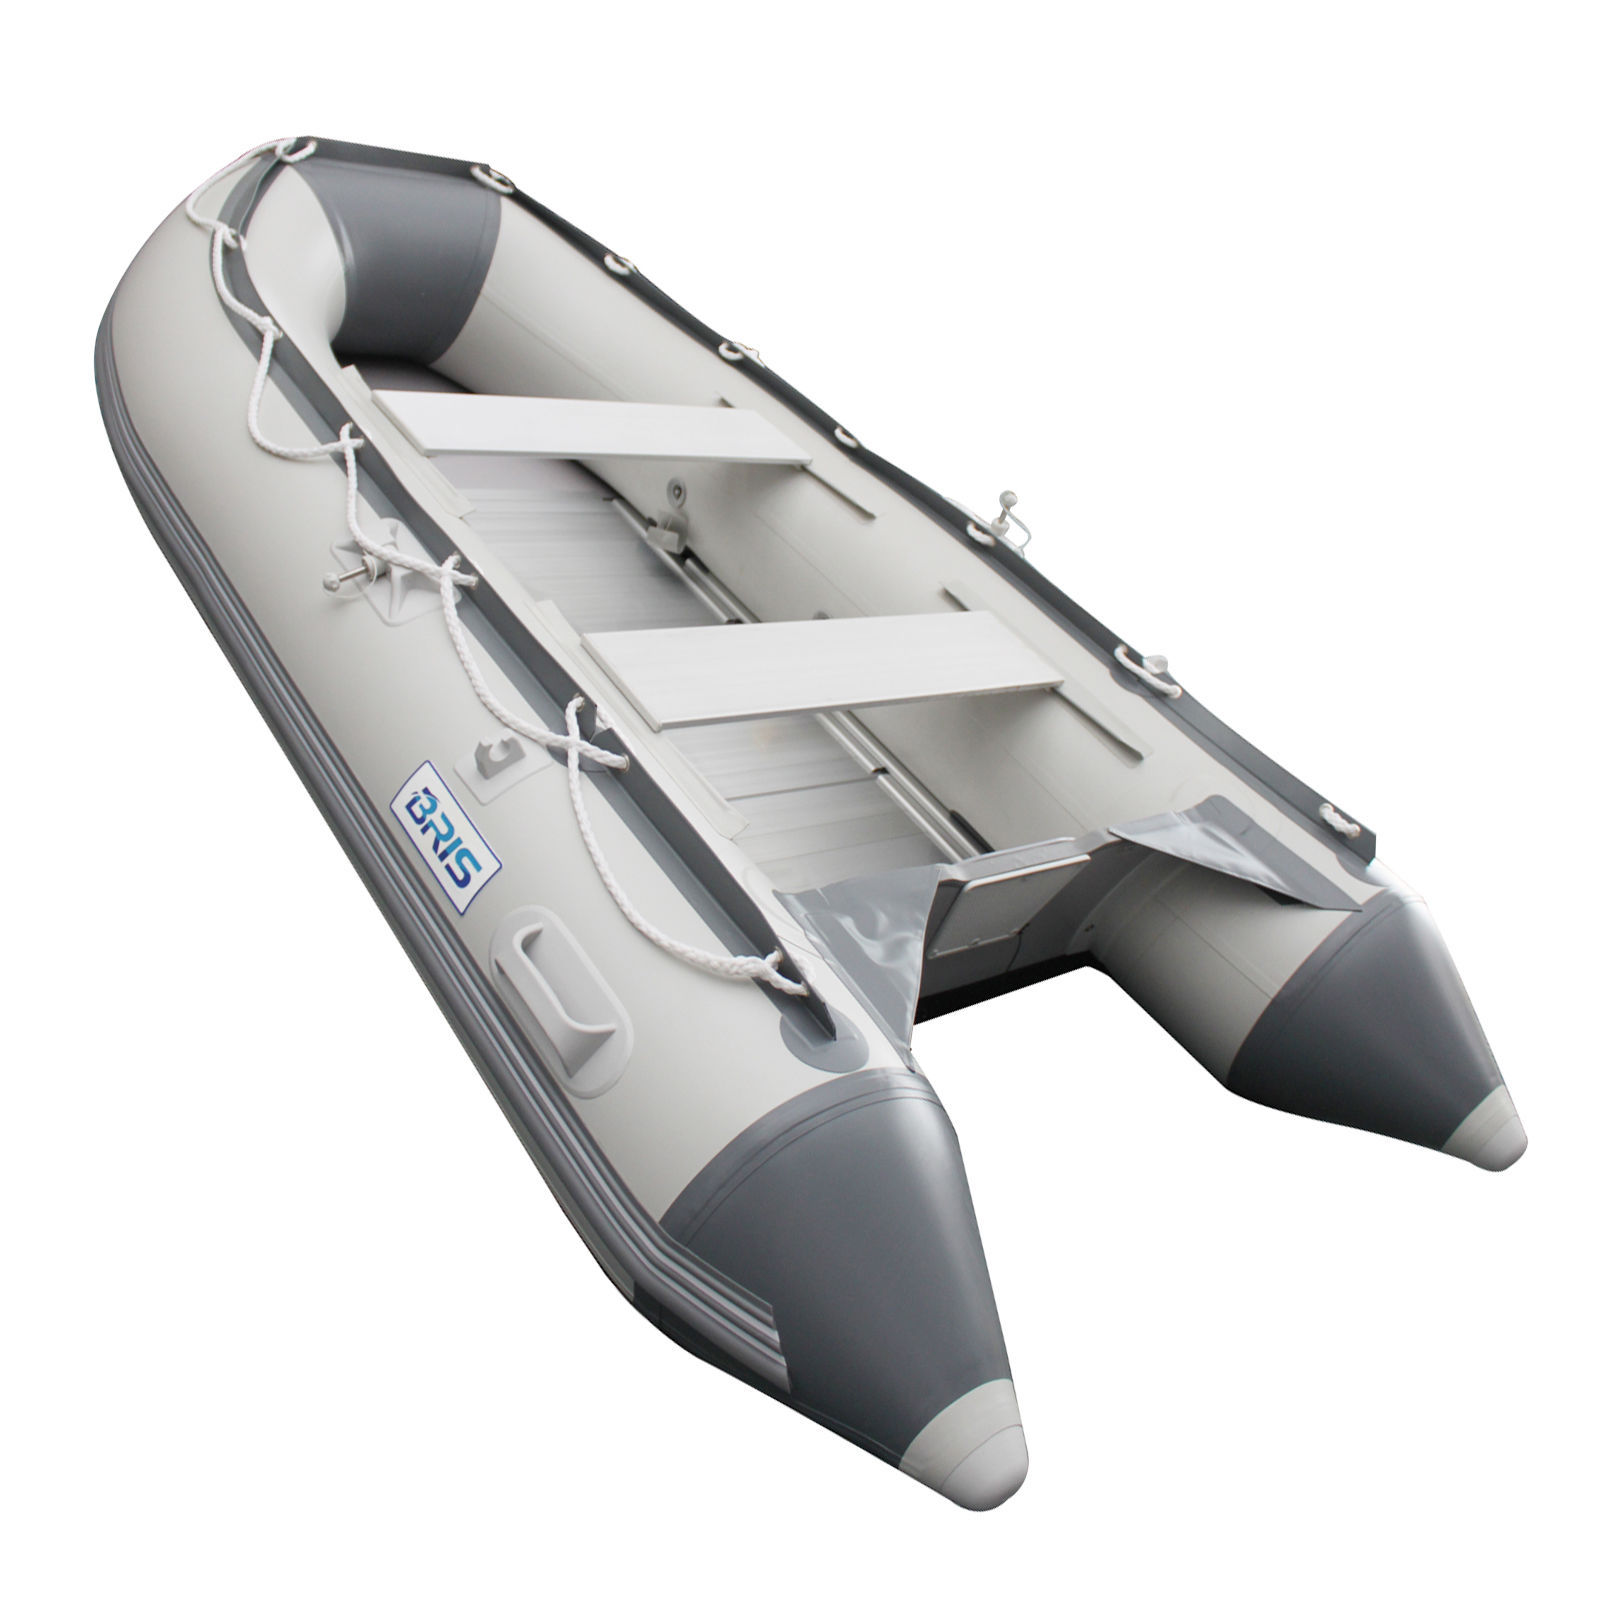 BRIS 9.8 ft Inflatable Boat Yacht Tender Fishing Raft Dinghy Pontoon Boat